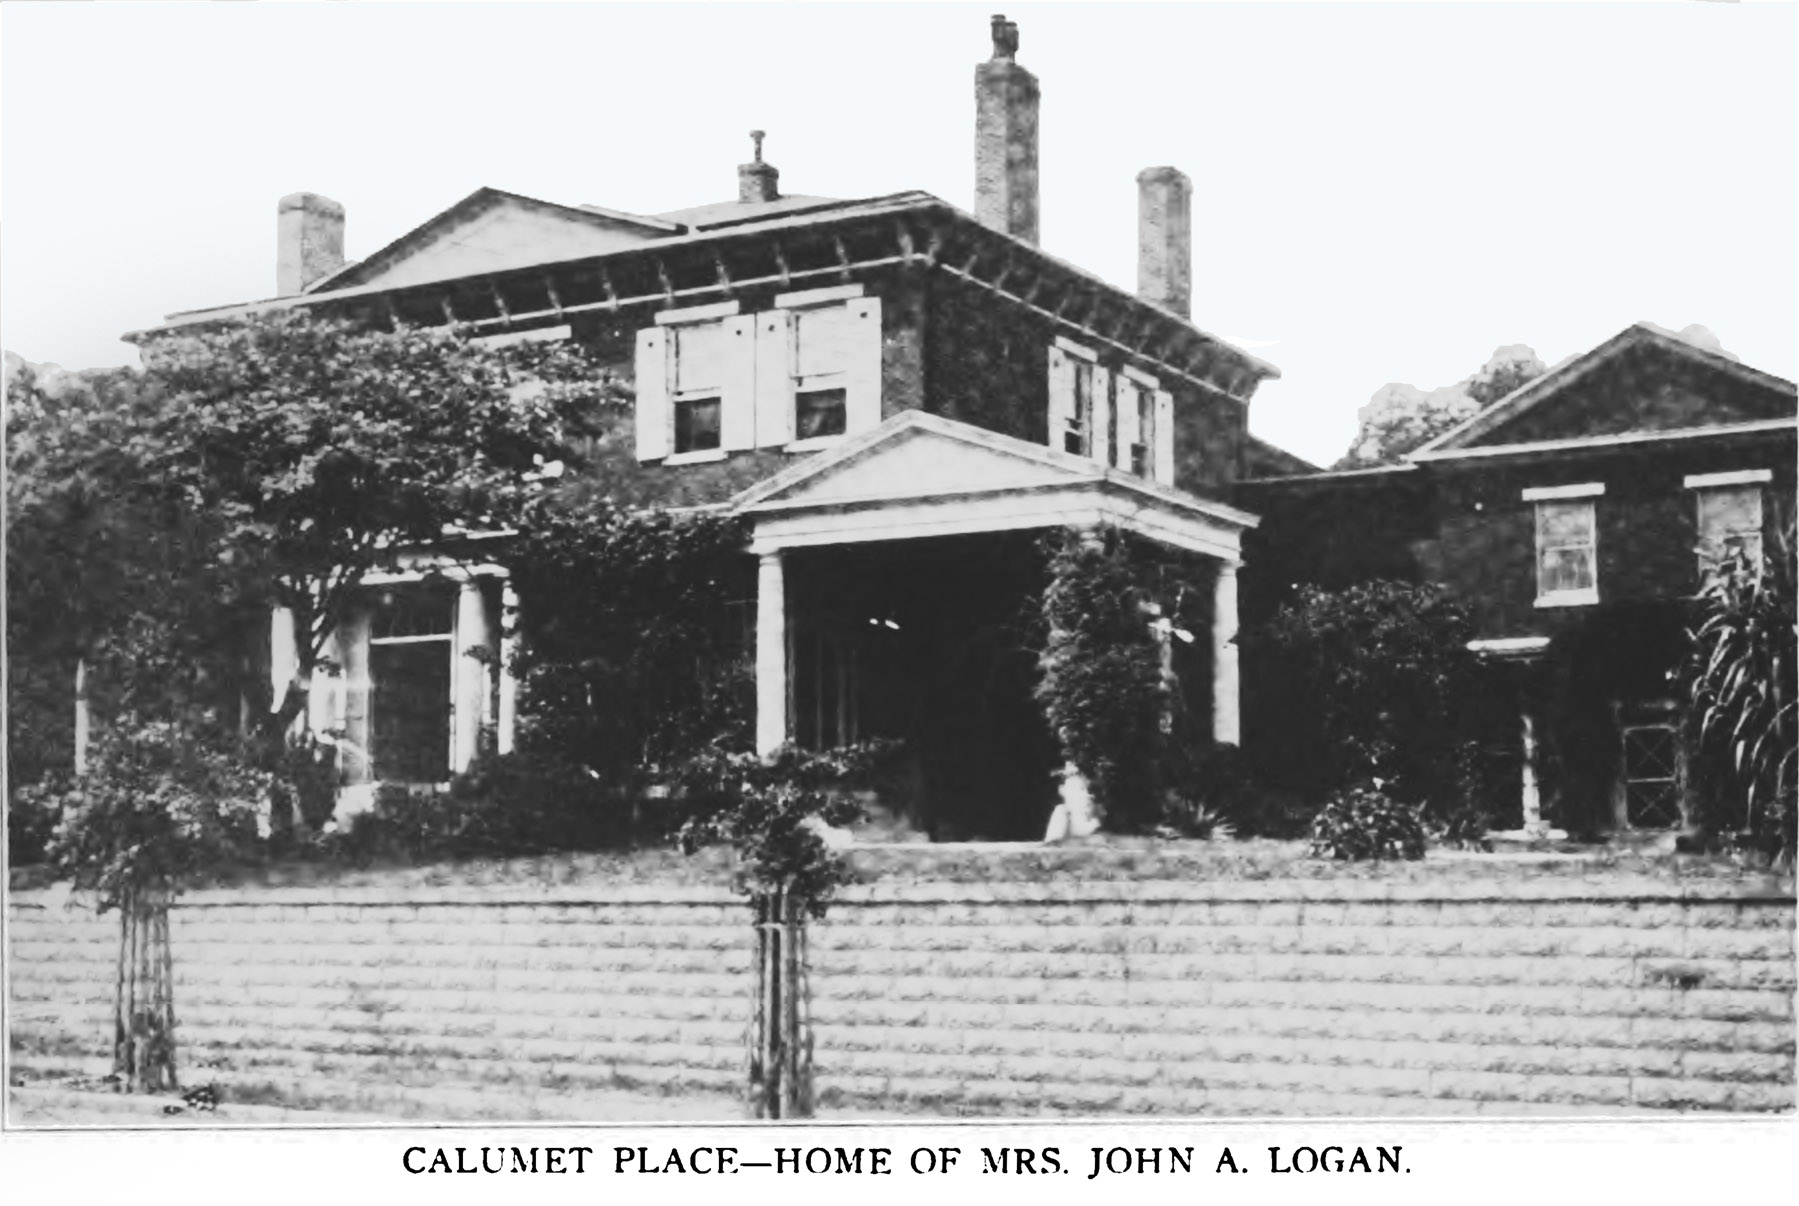 Calumet Place - Home of Mrs. John A. Logan